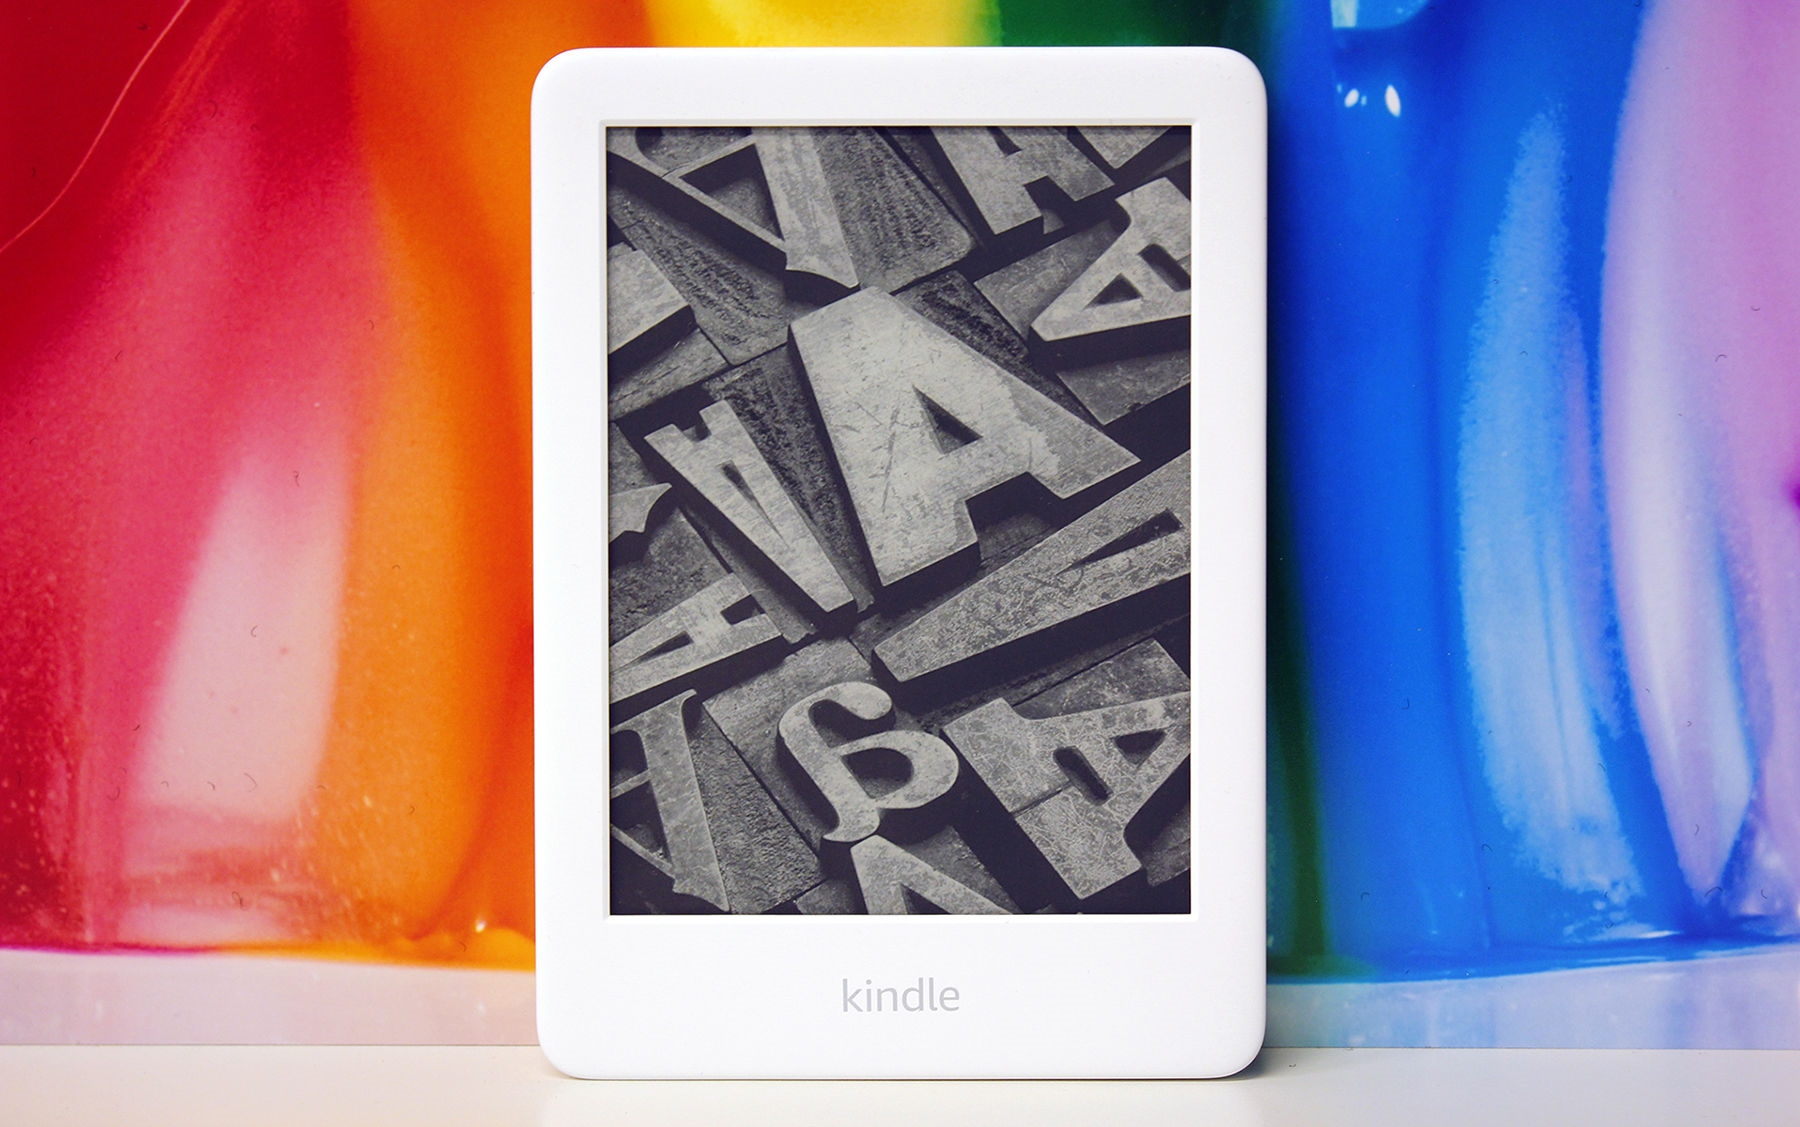 Amazon Kindle review (2019): The Paperwhite gets a run for its money | DeviceDaily.com